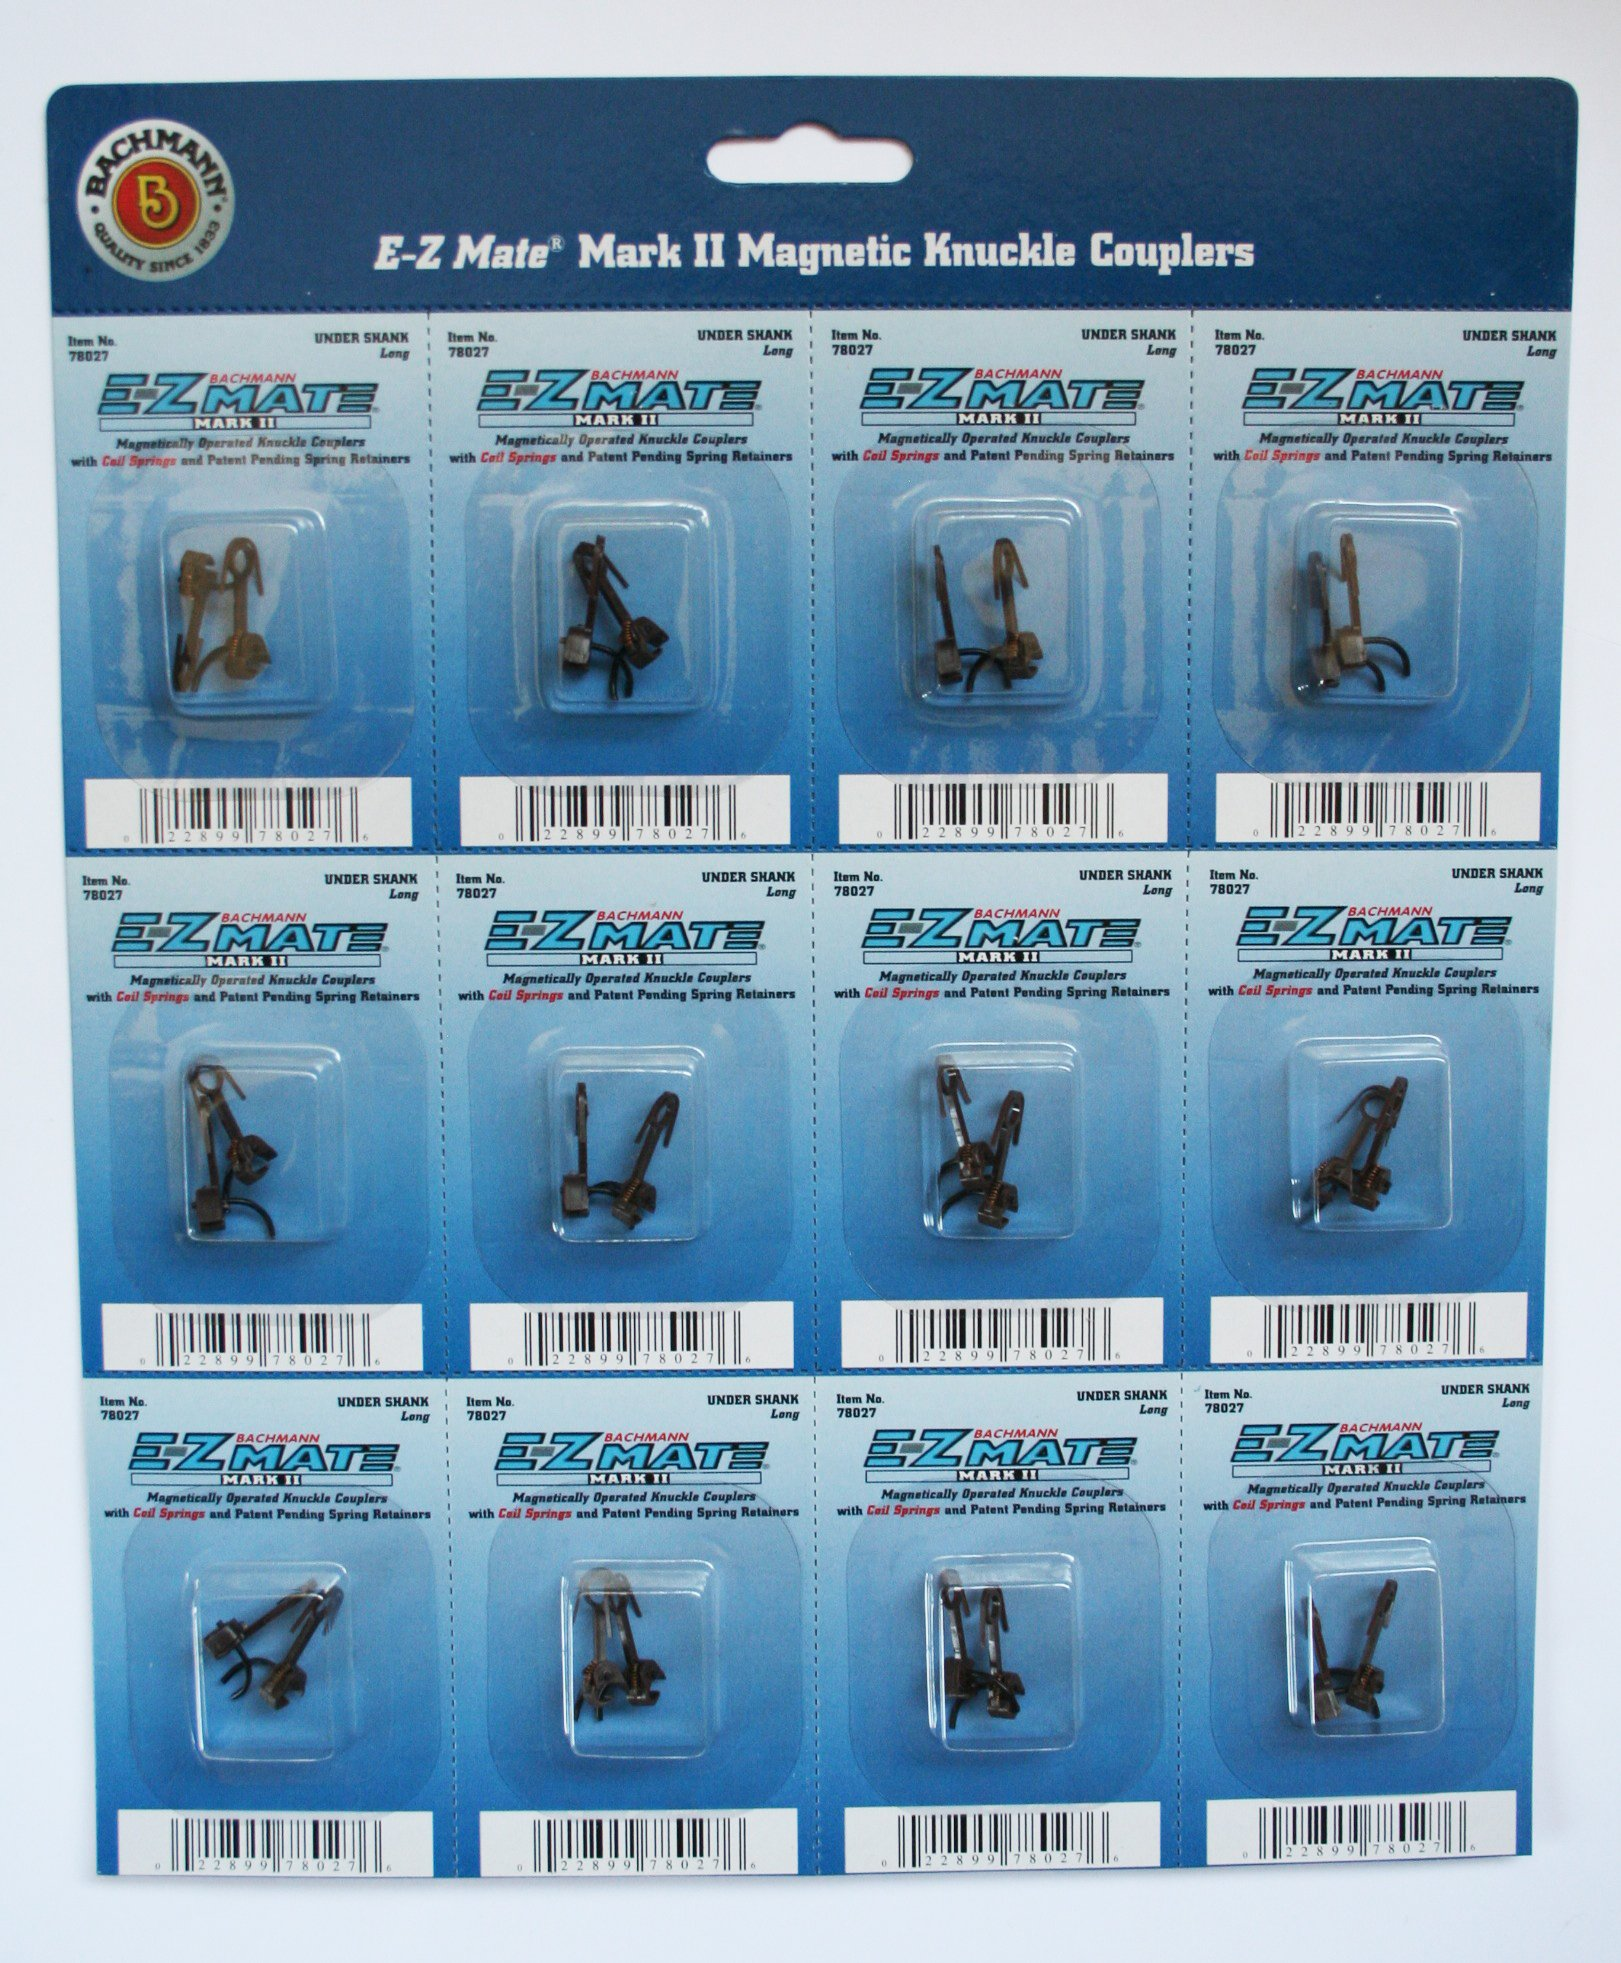 Bachmann Trains E - Z Mate Mark II Magnetic Knuckle Couplers with Metal Coil Spring - Under Shank - Short (12 Coupler pairs per card) - HO Scale